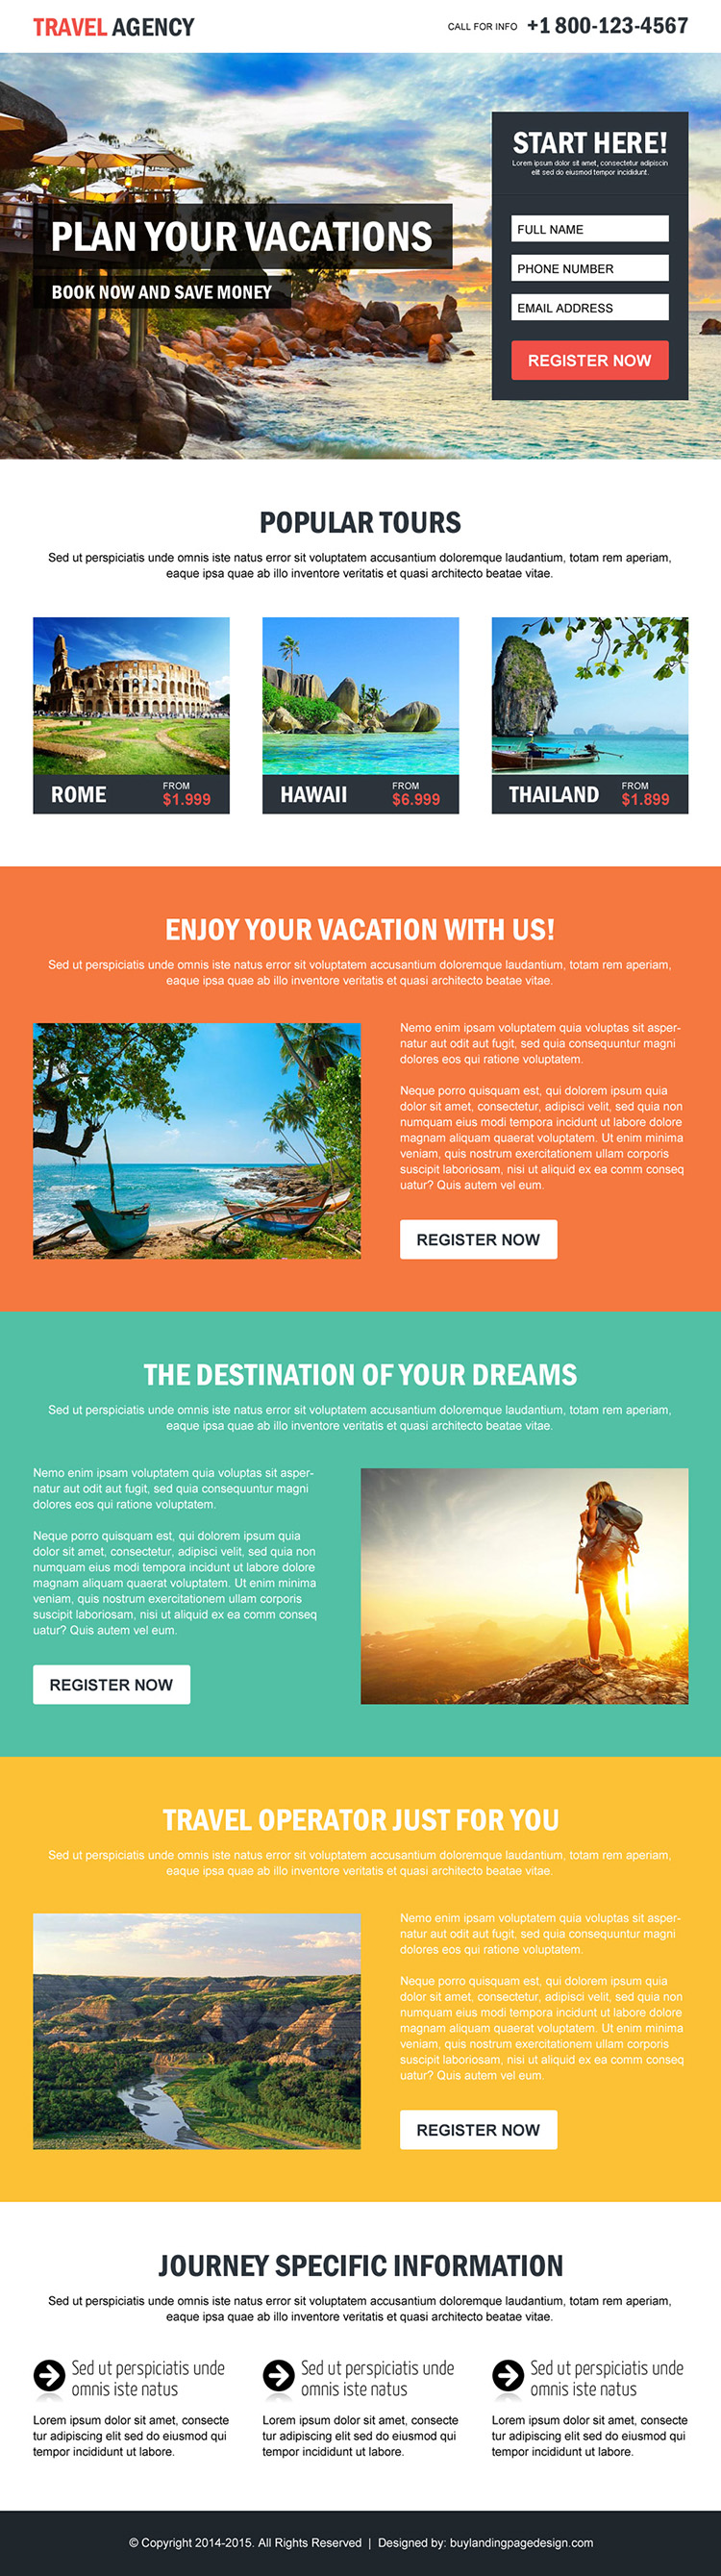 travel agency vacation planning responsive landing page